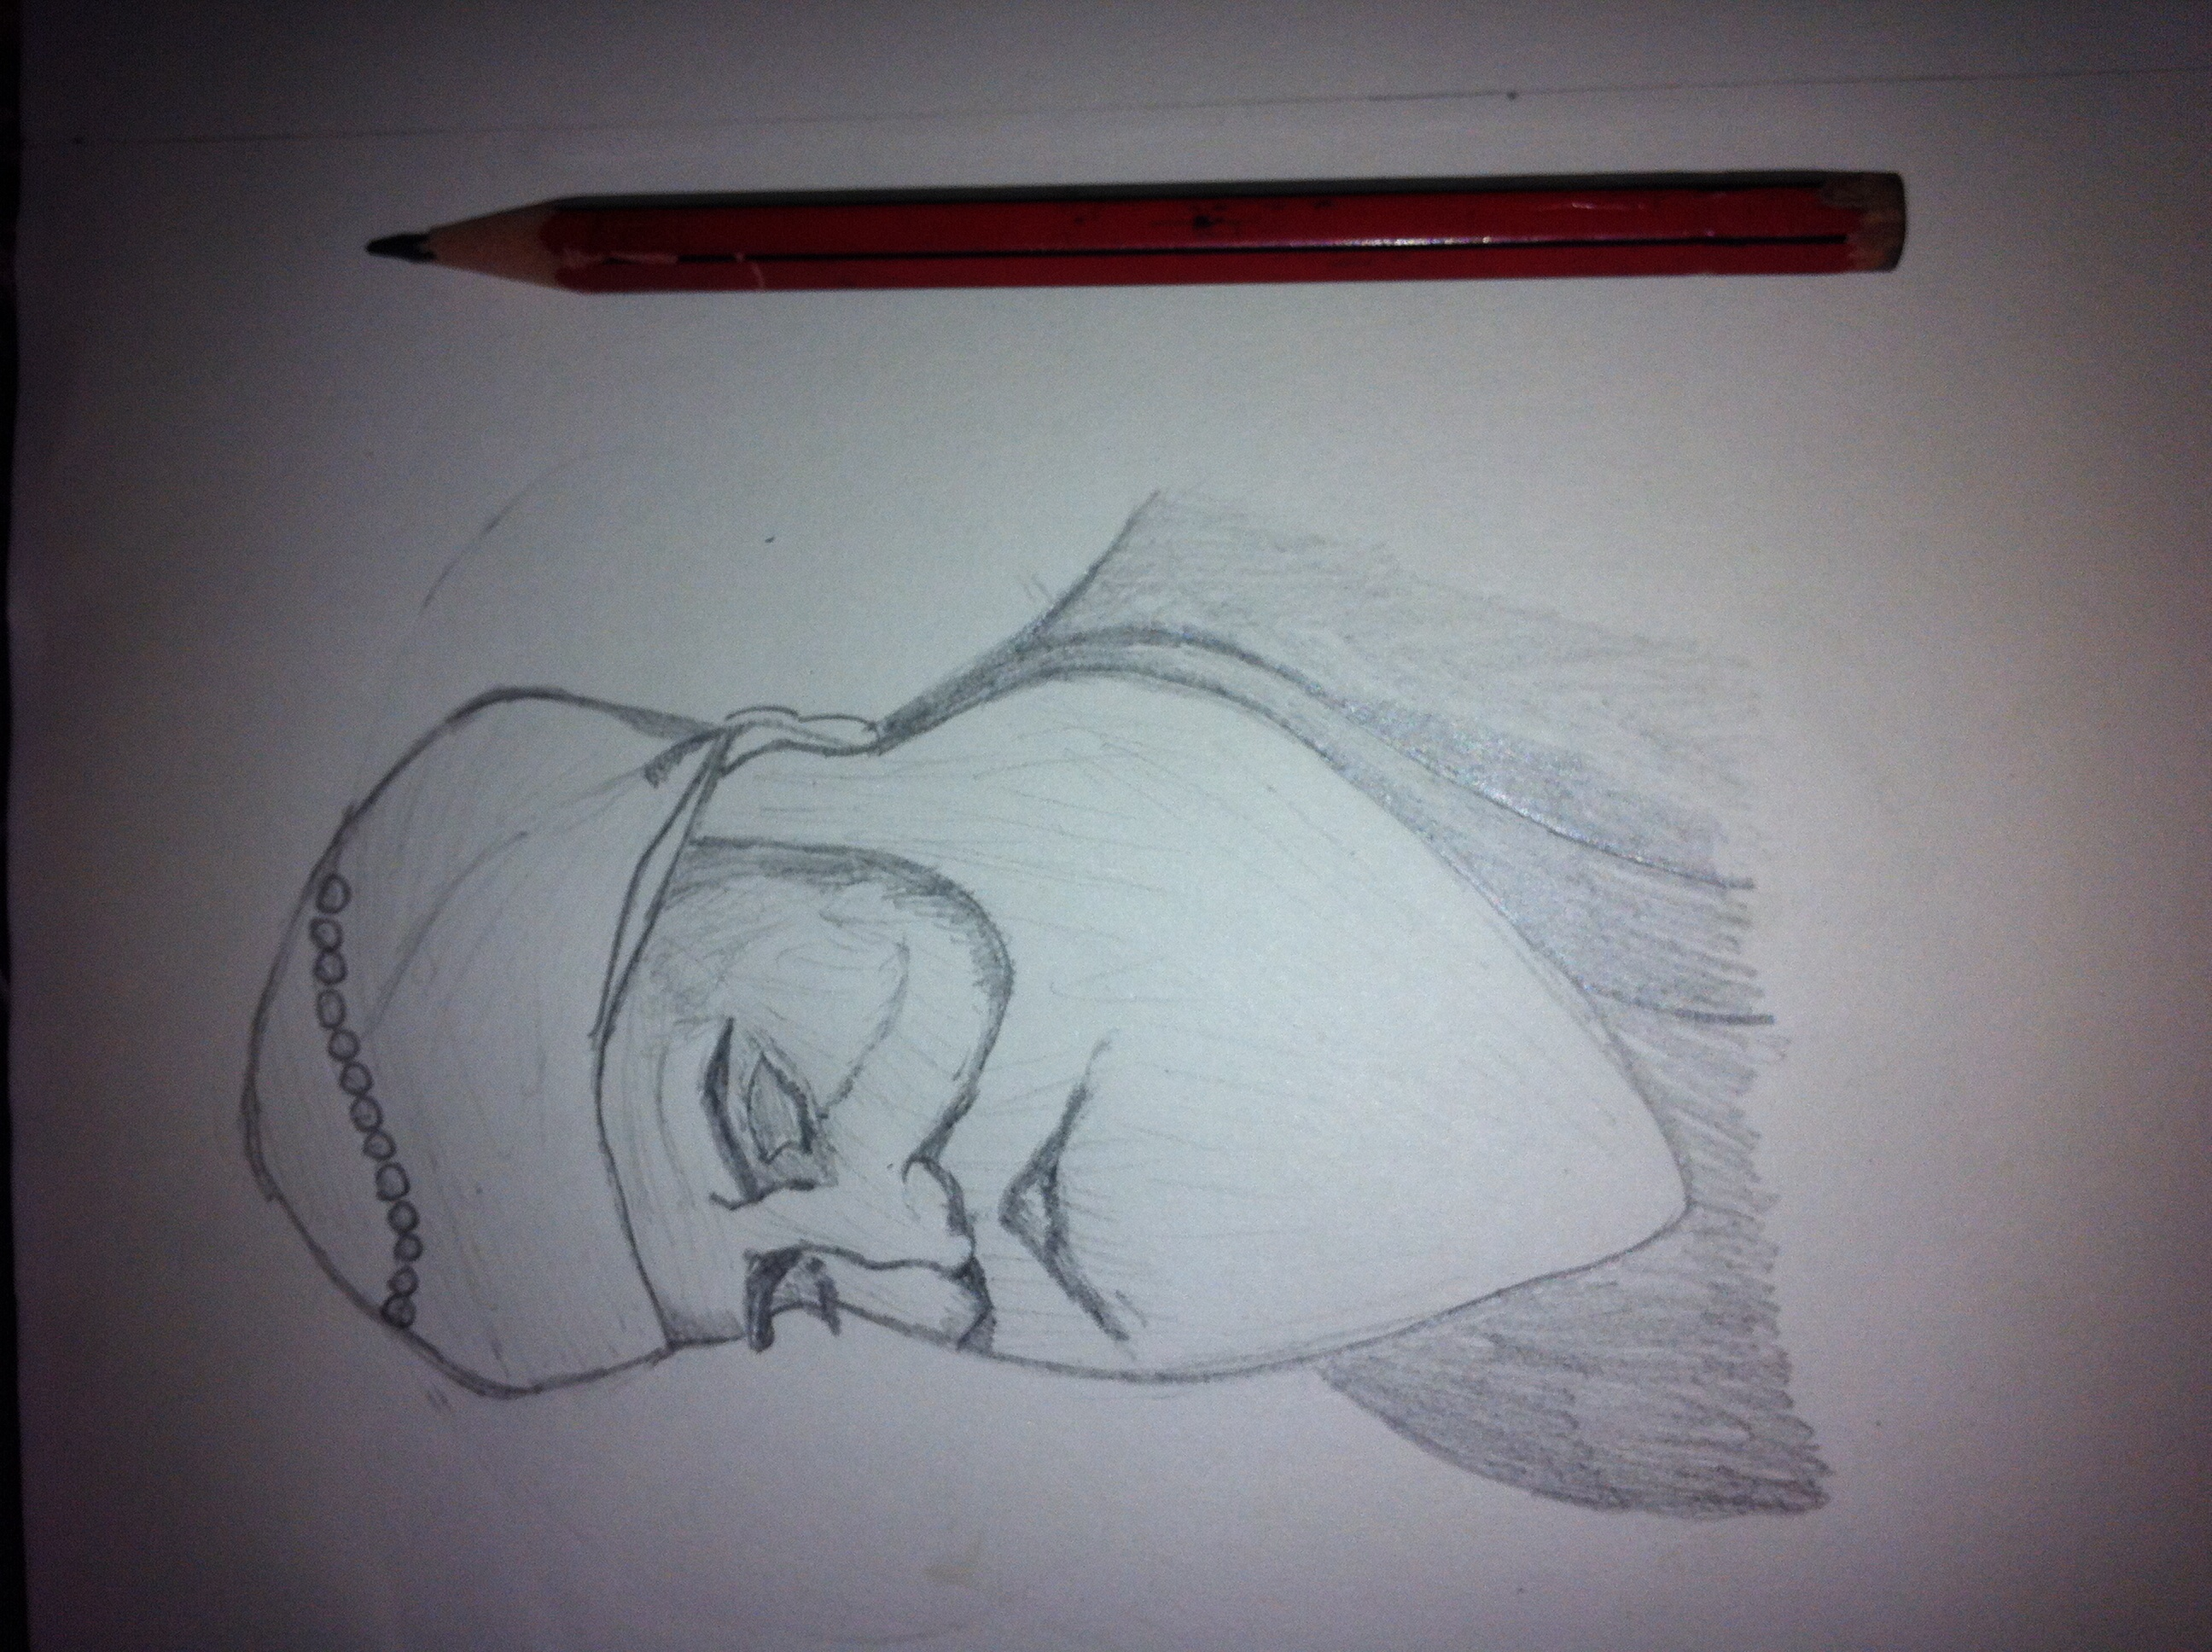 My drawing